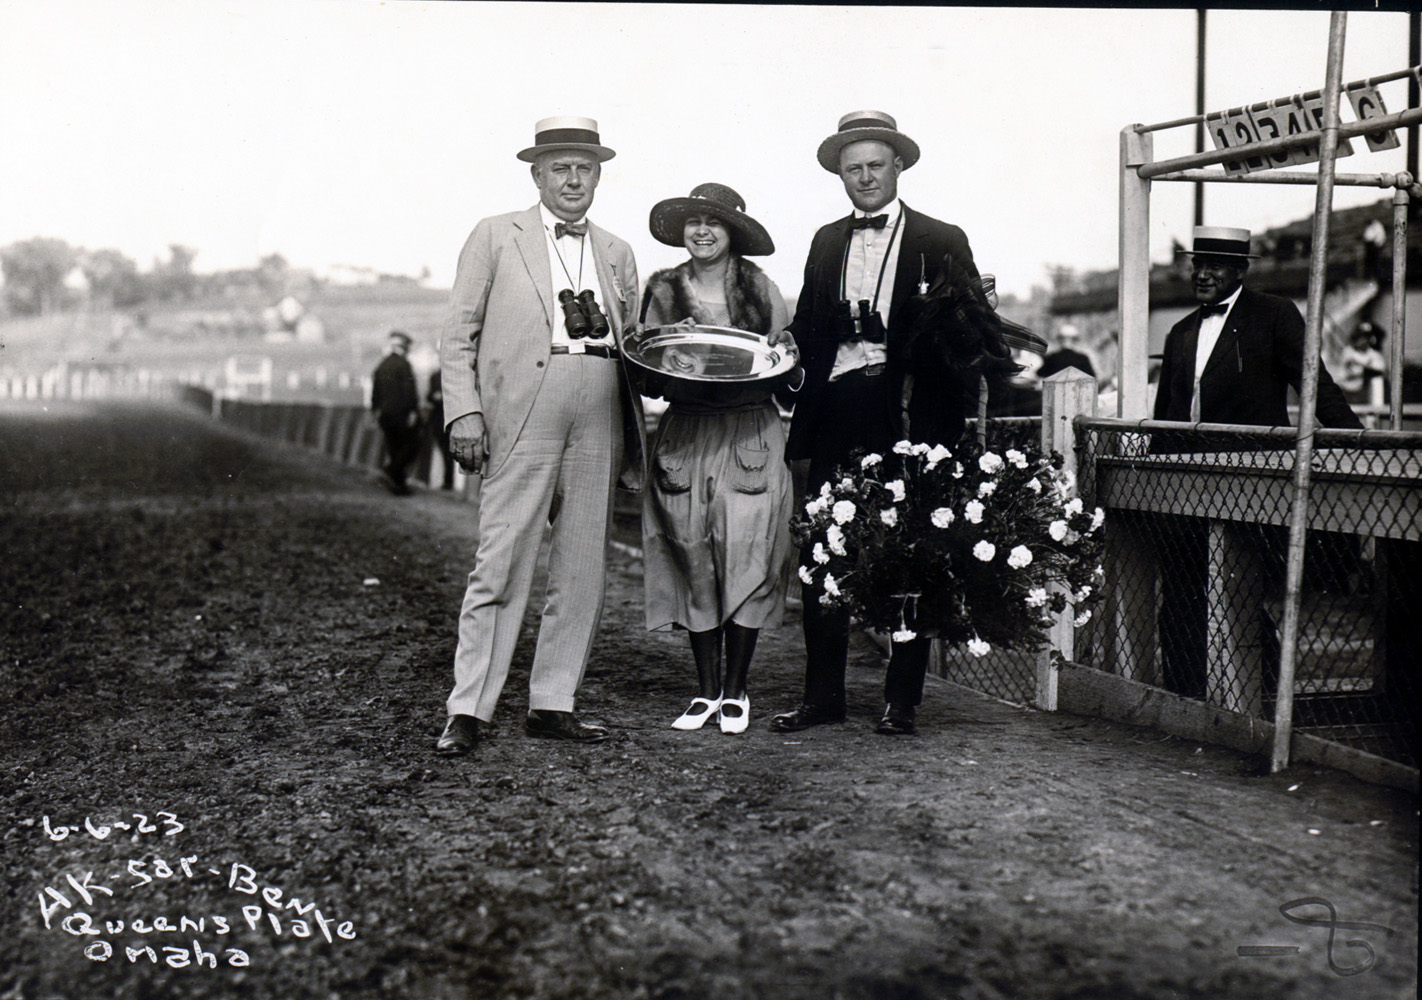 Ben Jones (on right) during the trophy presentation for the Queens Plate at Ak-Sar-Ben in June 1923 (Museum Collection)